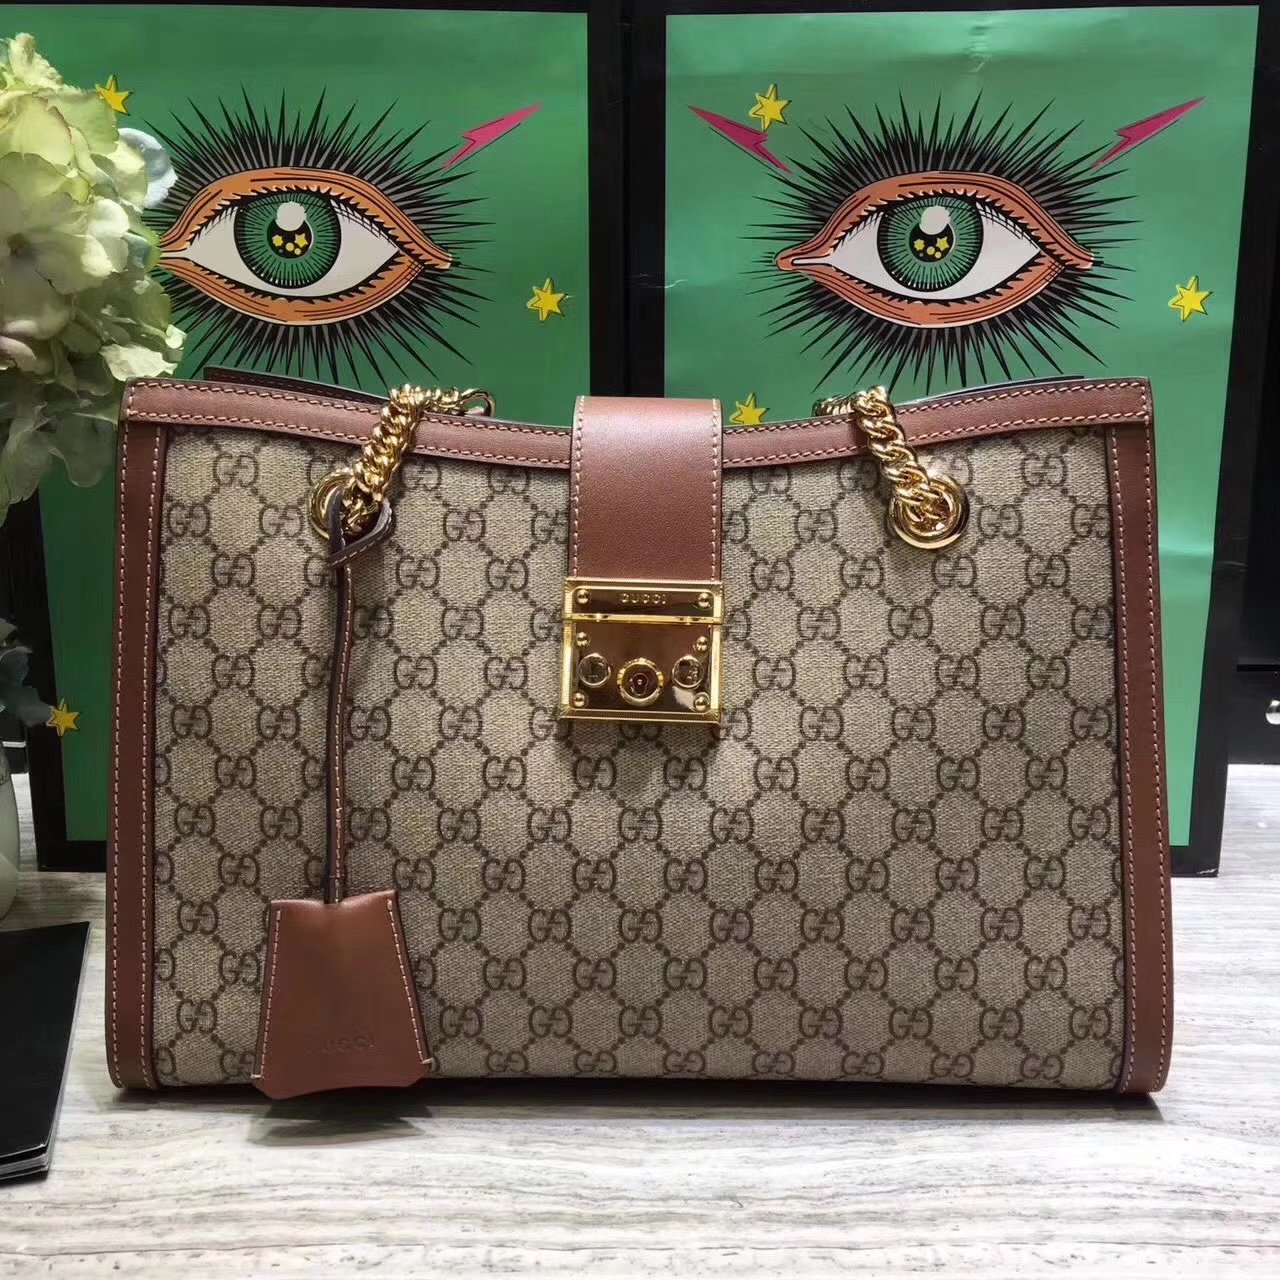 Original Quality Gucci 479197 Padlock Medium GG Supreme Canvas Shoulder Bag Brown